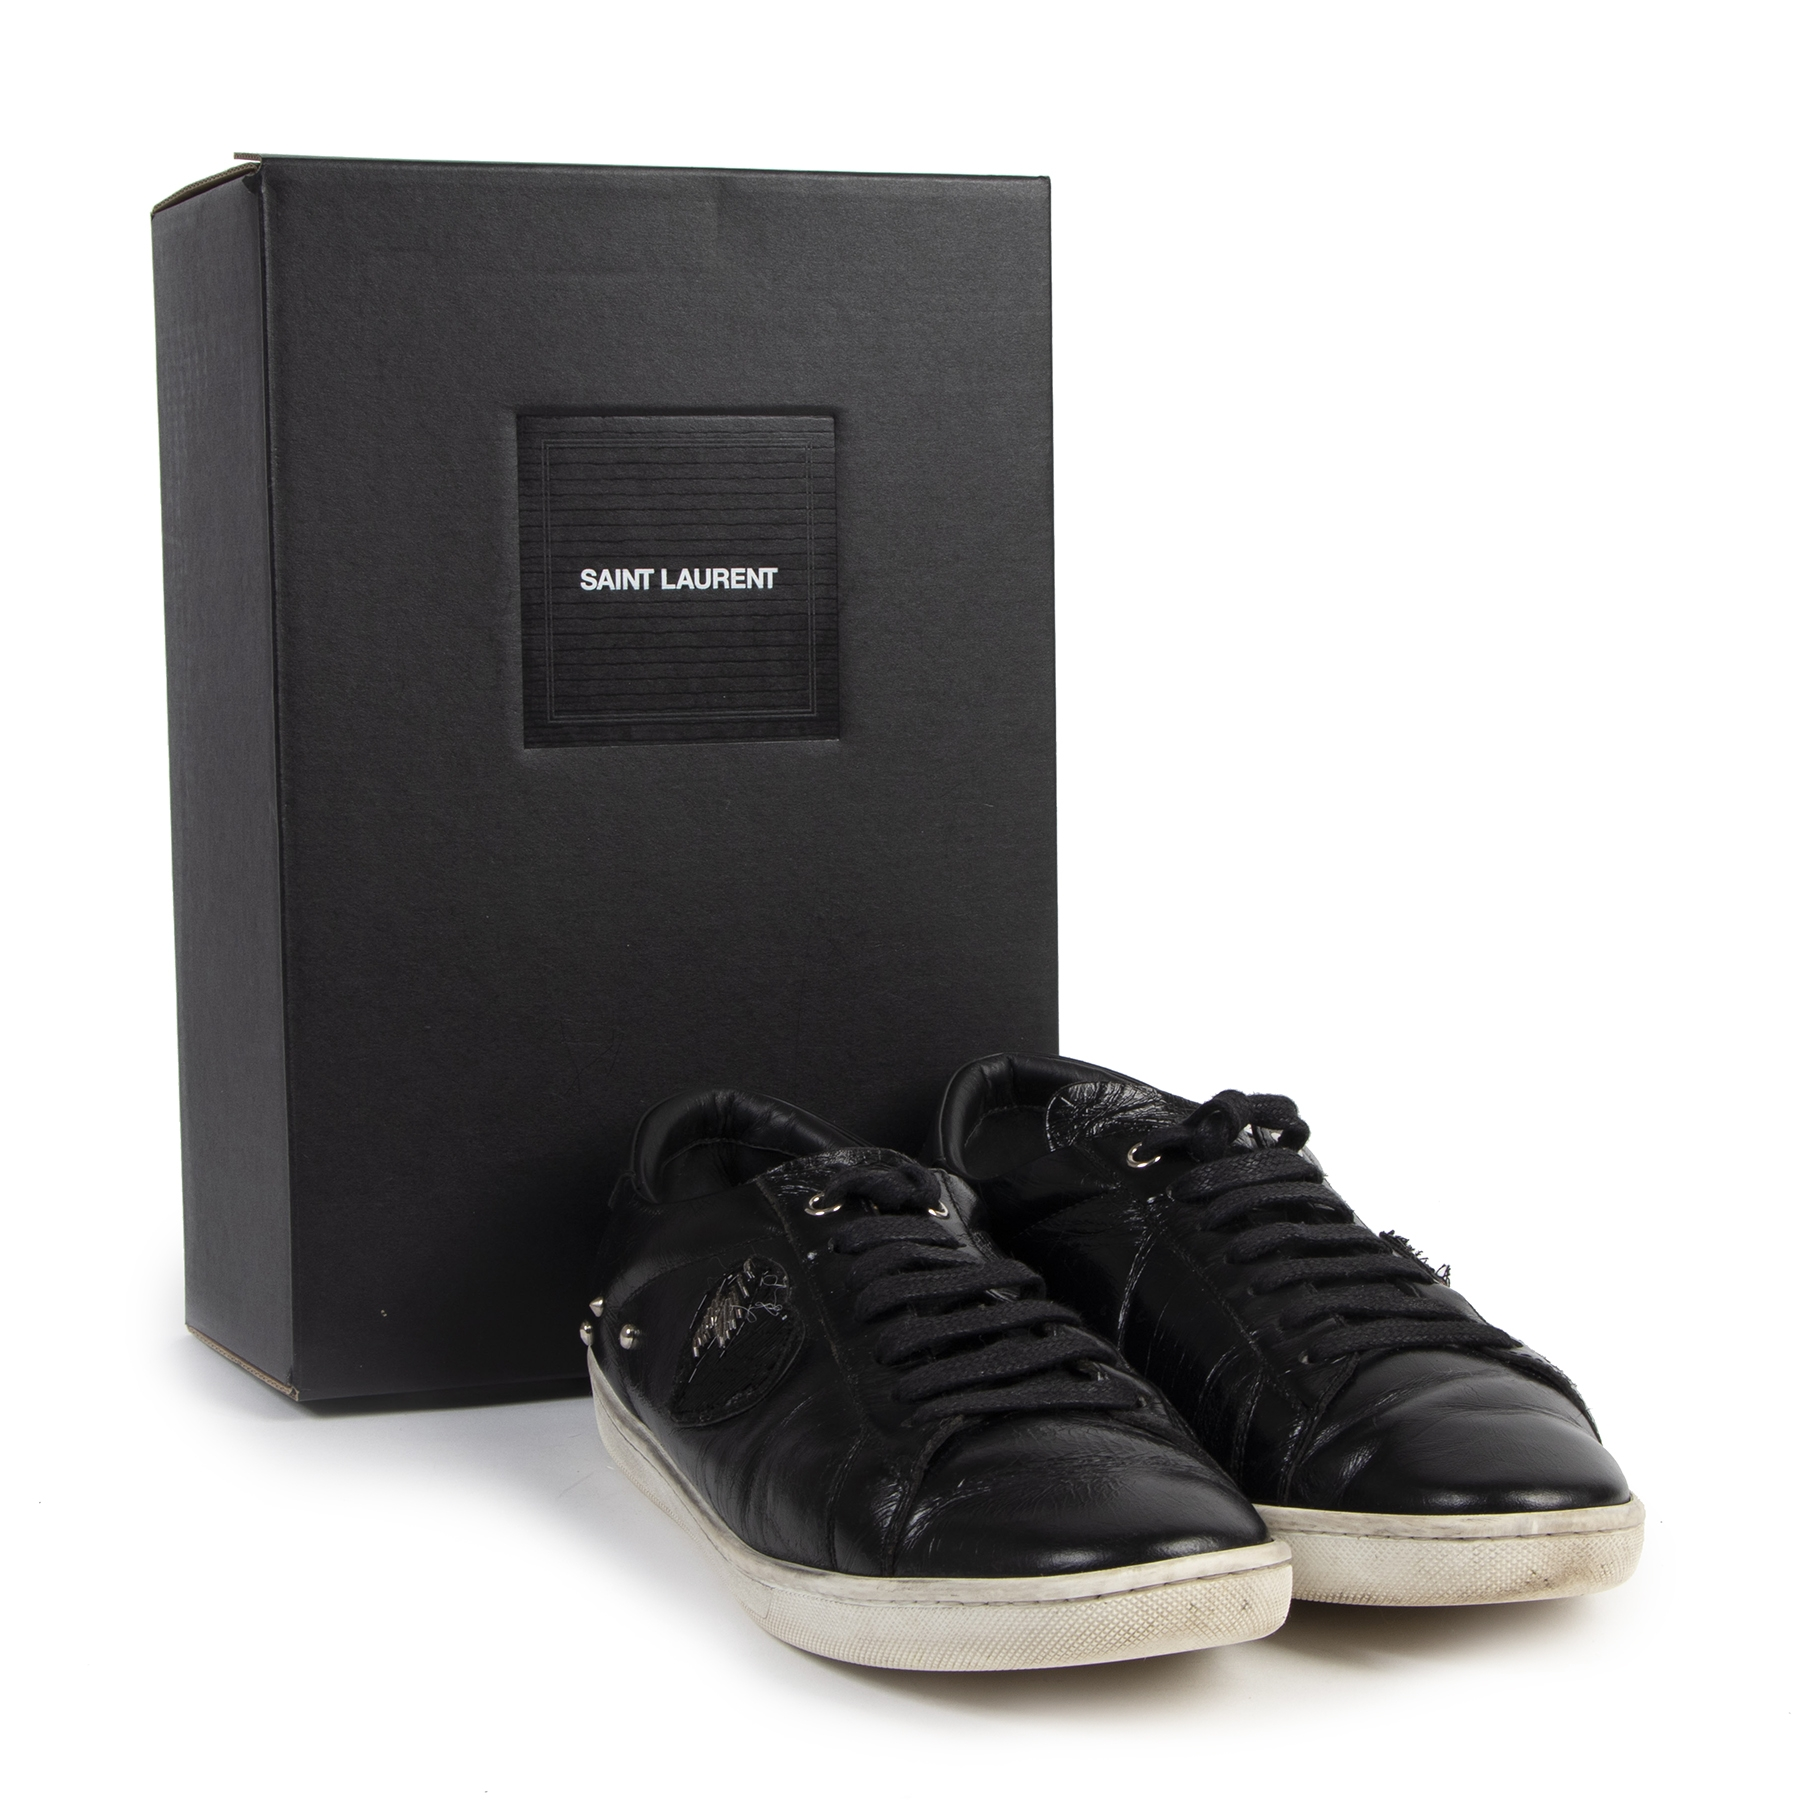 Authentic secondhand Saint Laurent Black Lightning Heart Patch Sneakers - Size 40 designer sneakers fashion luxury vintage webshop designer brands safe secure online shopping